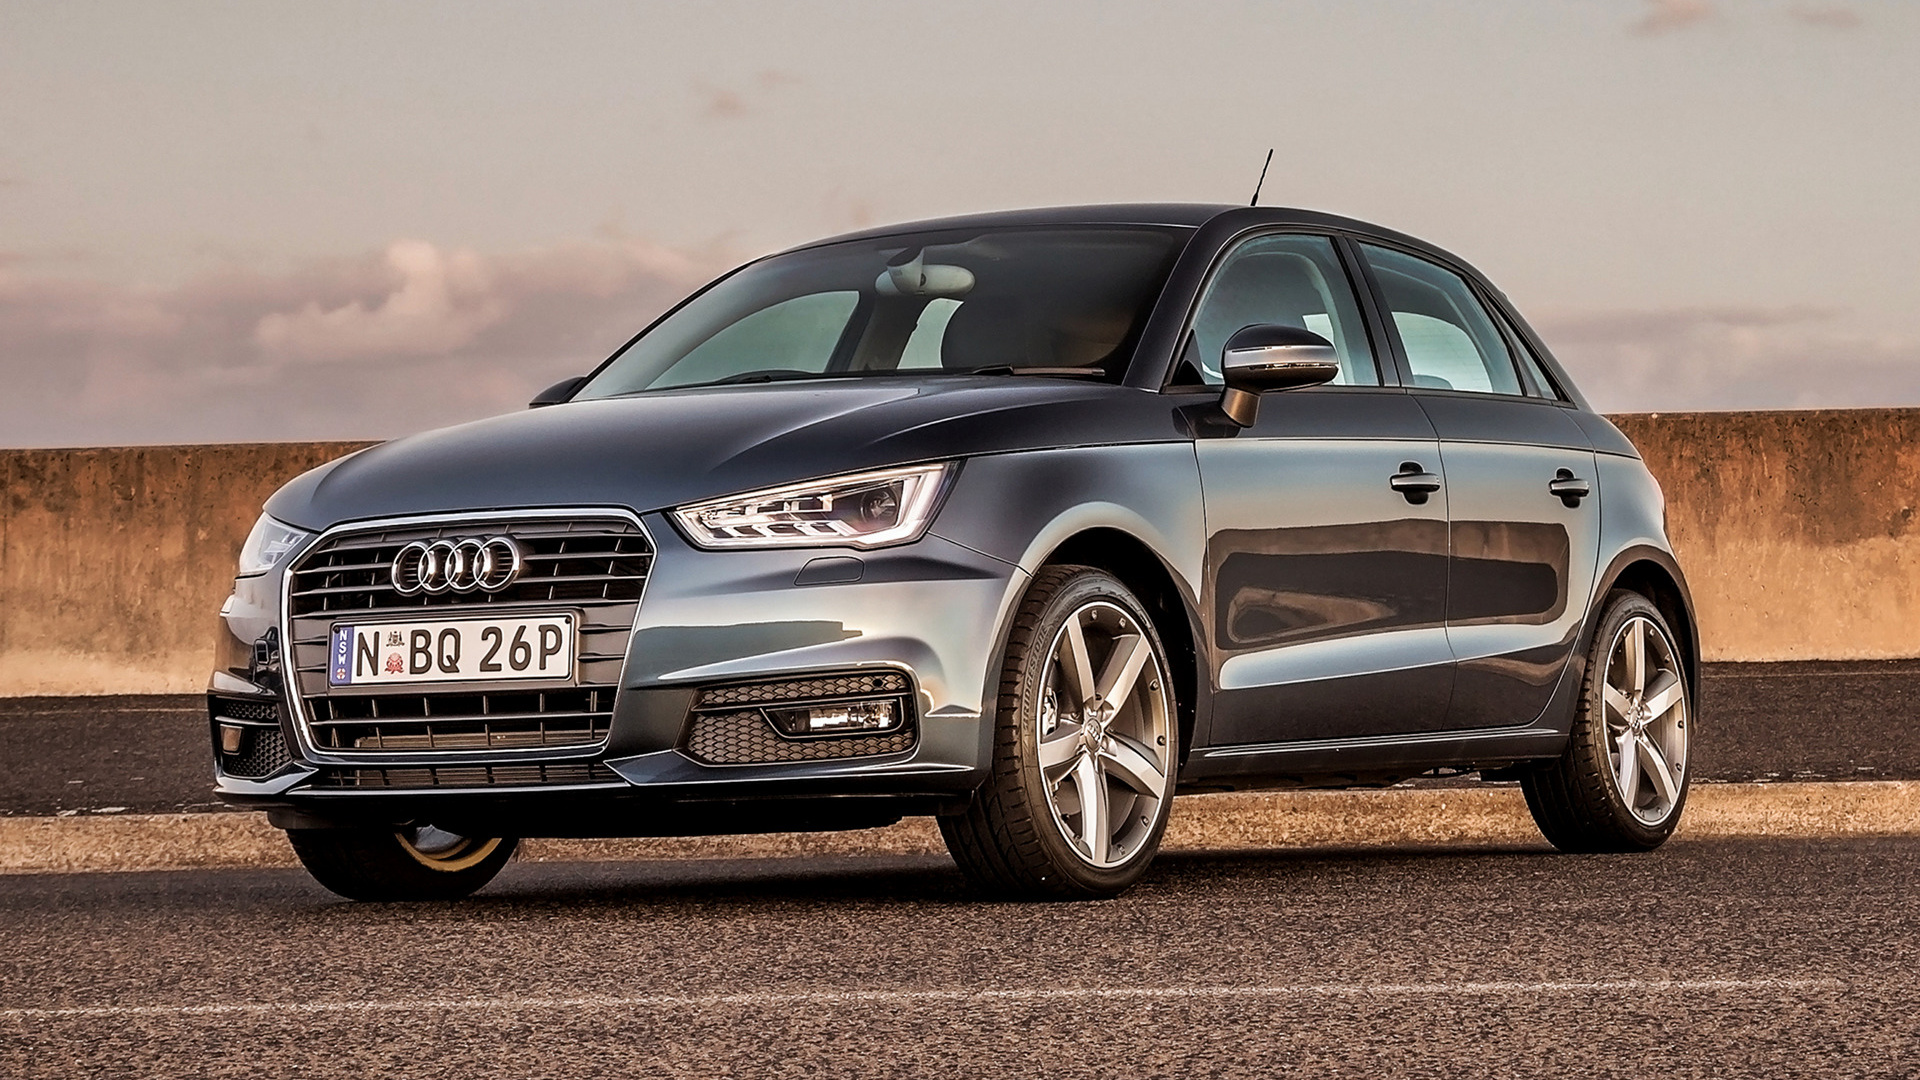 1920x1080 - Audi A1 Wallpapers 7